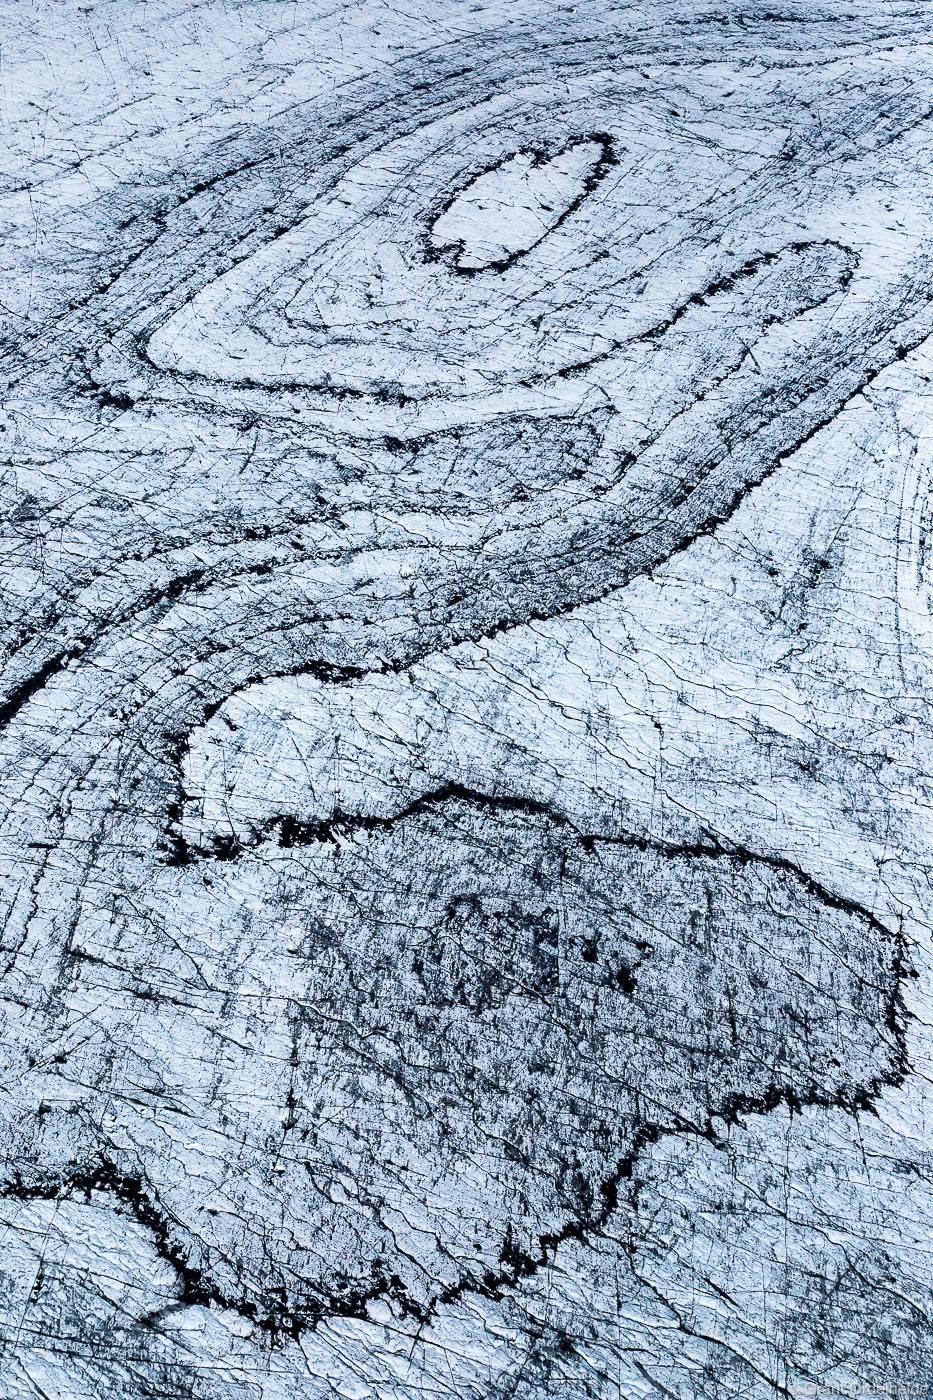 aerial, image, glacier, curves, vatnajökull, iceland, abstract, lines, patterns, , photo